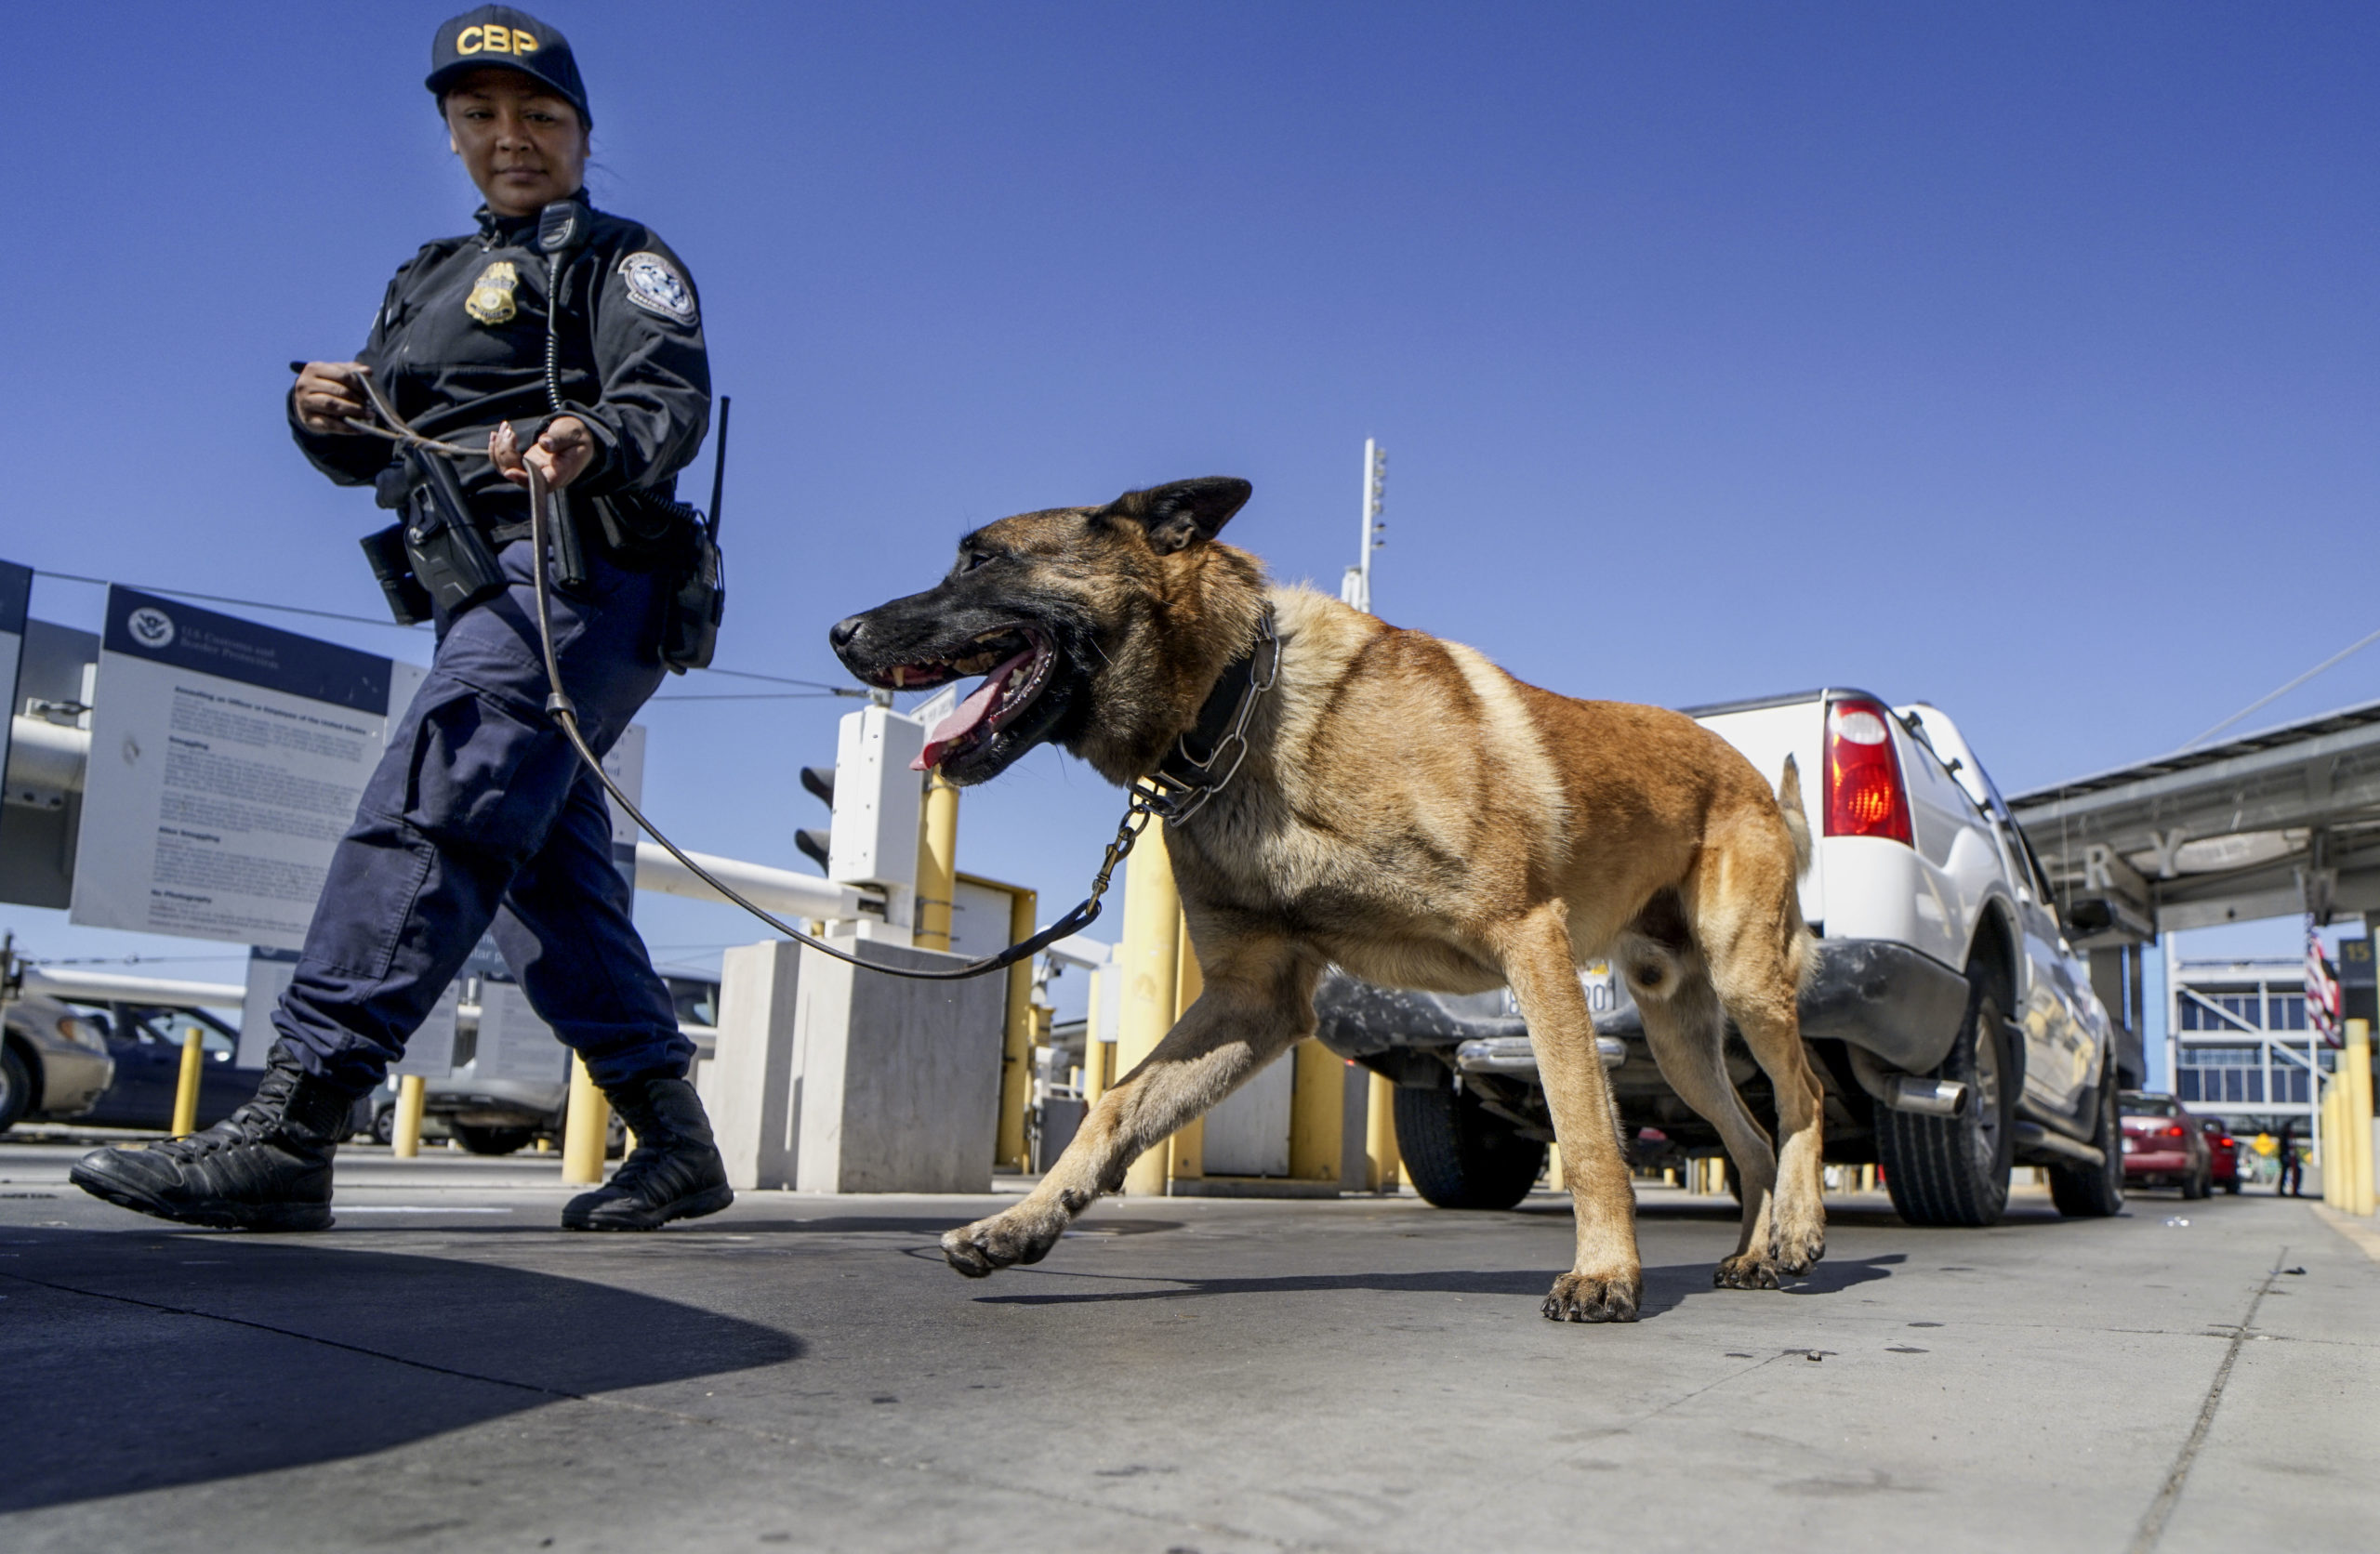 An Immigration and Customs Enforcement (ICE) K-9 agent checks automobiles for contraband in the line to enter the United States at the San Ysidro Port of Entry on October 2, 2019 in San Ysidro, California. (Photo by SANDY HUFFAKER/AFP via Getty Images)